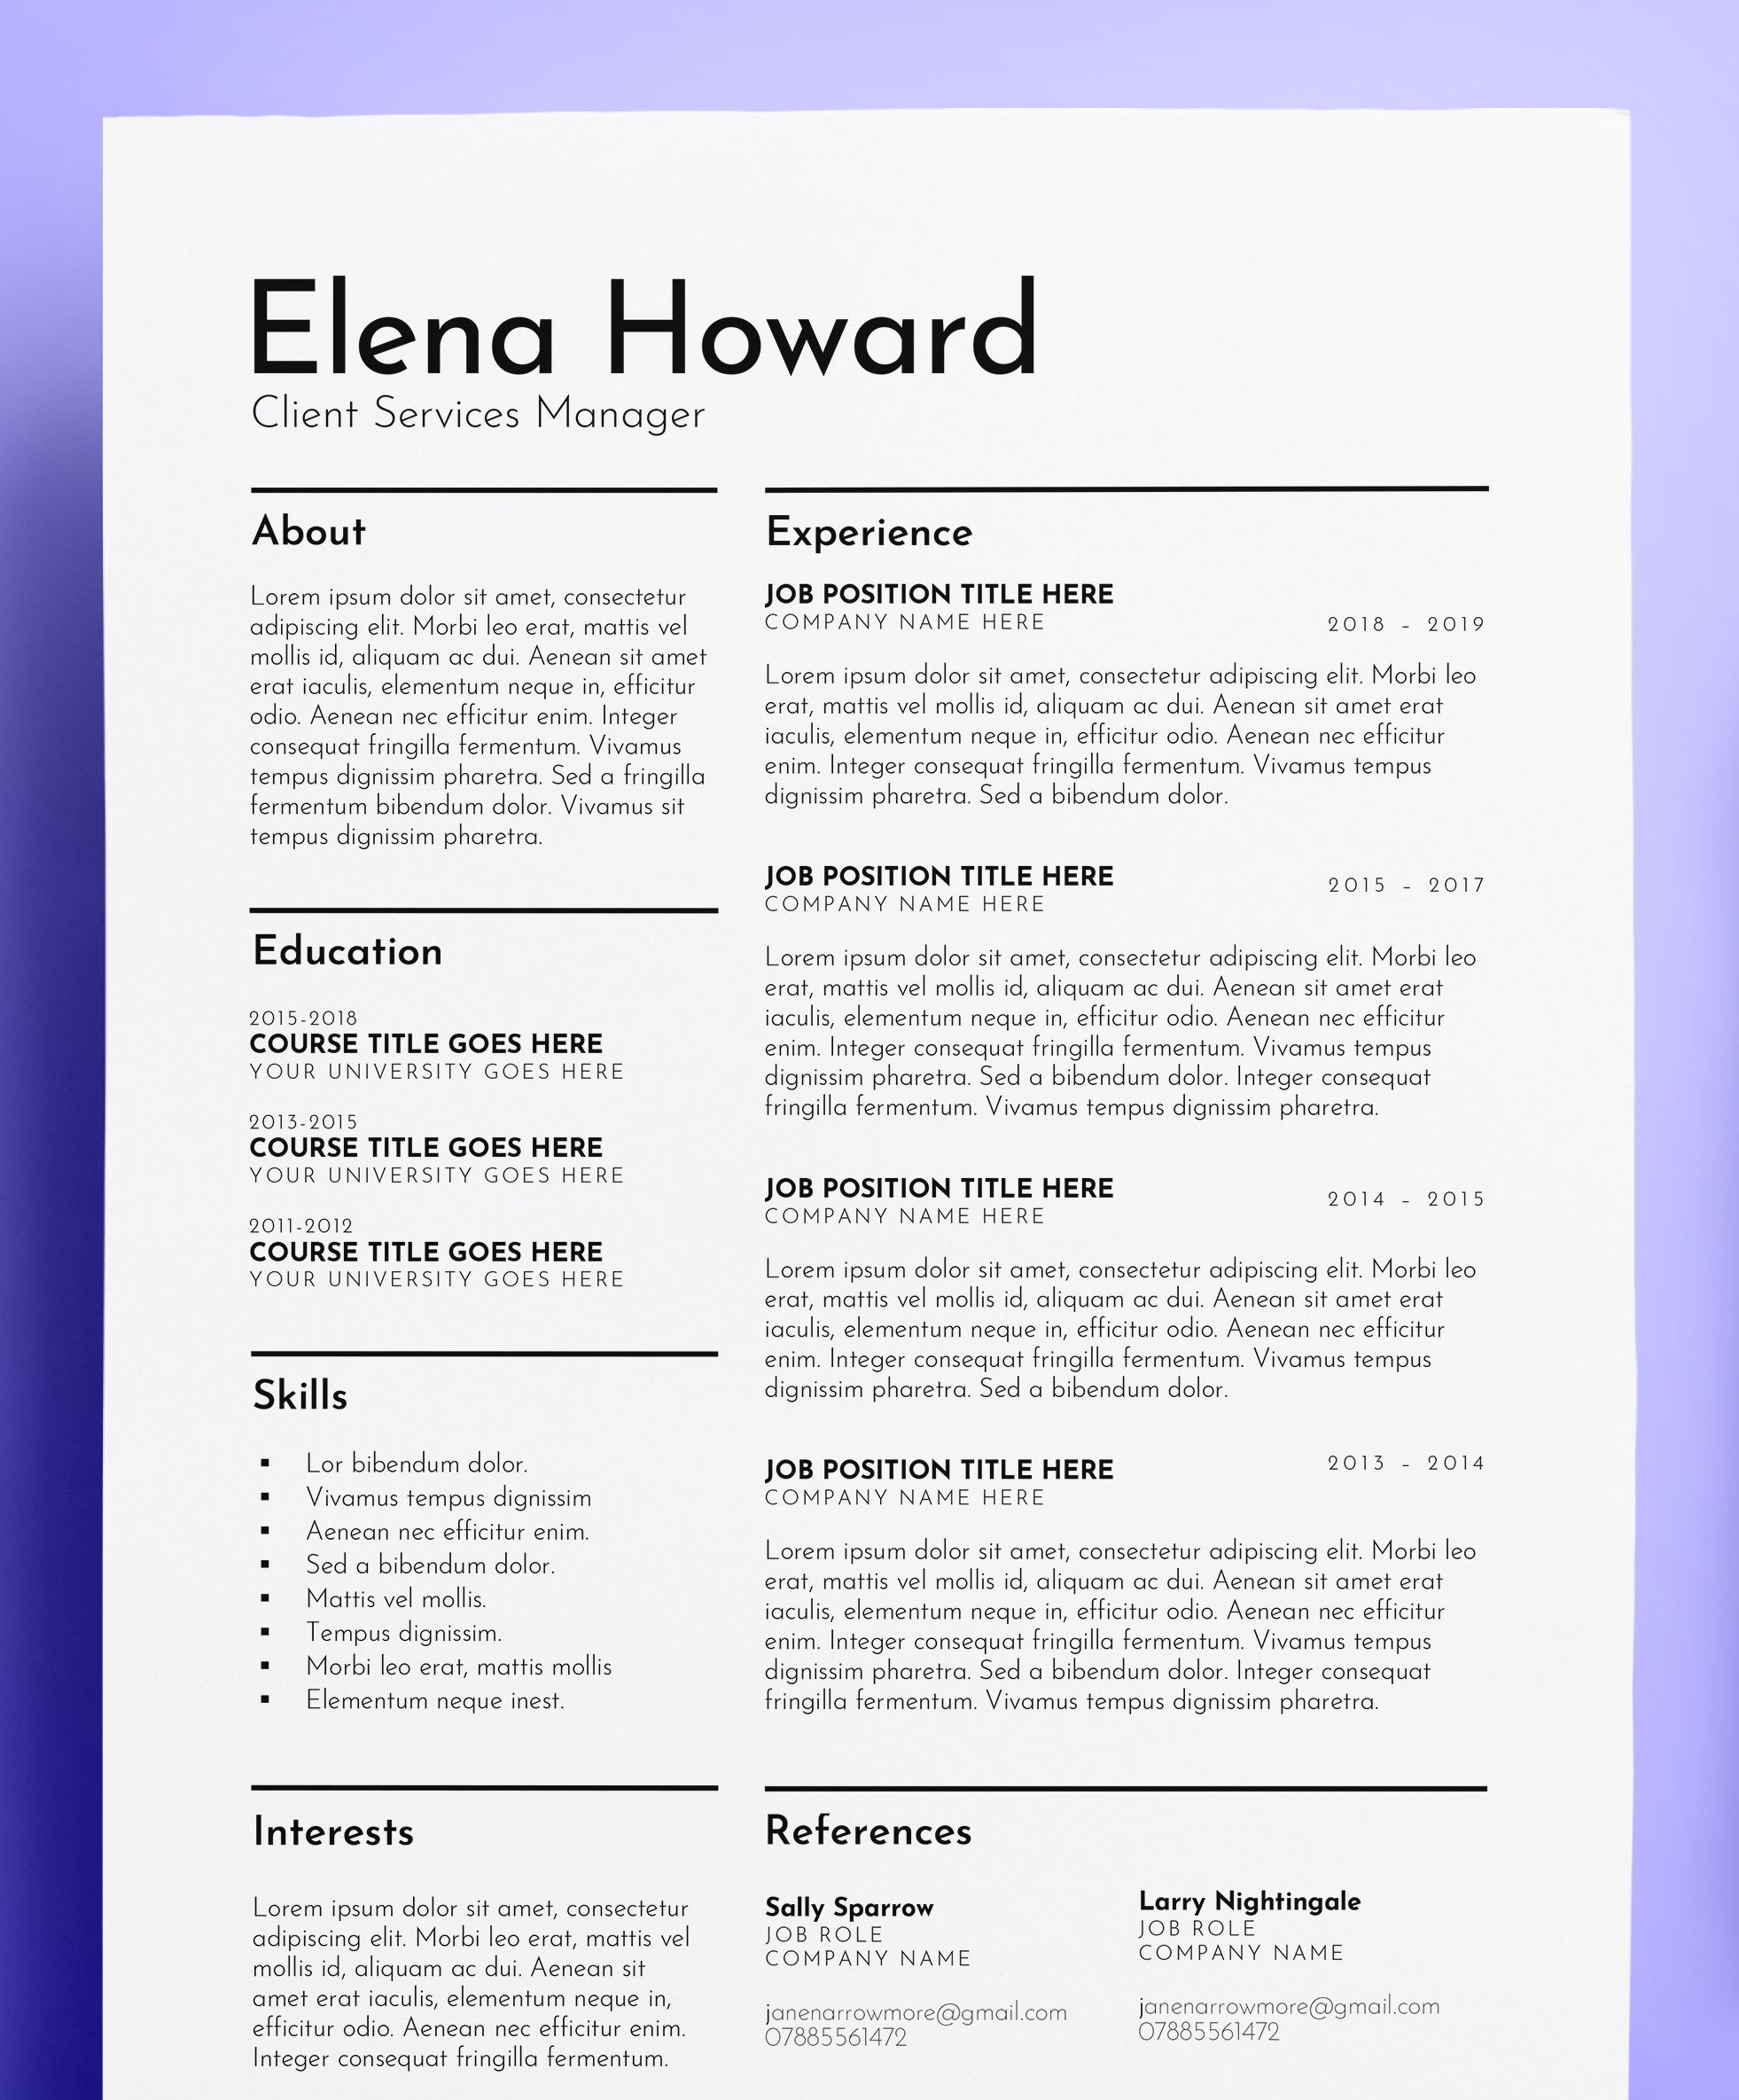 Elena Howard Client Services Manager Download For 8 25 On